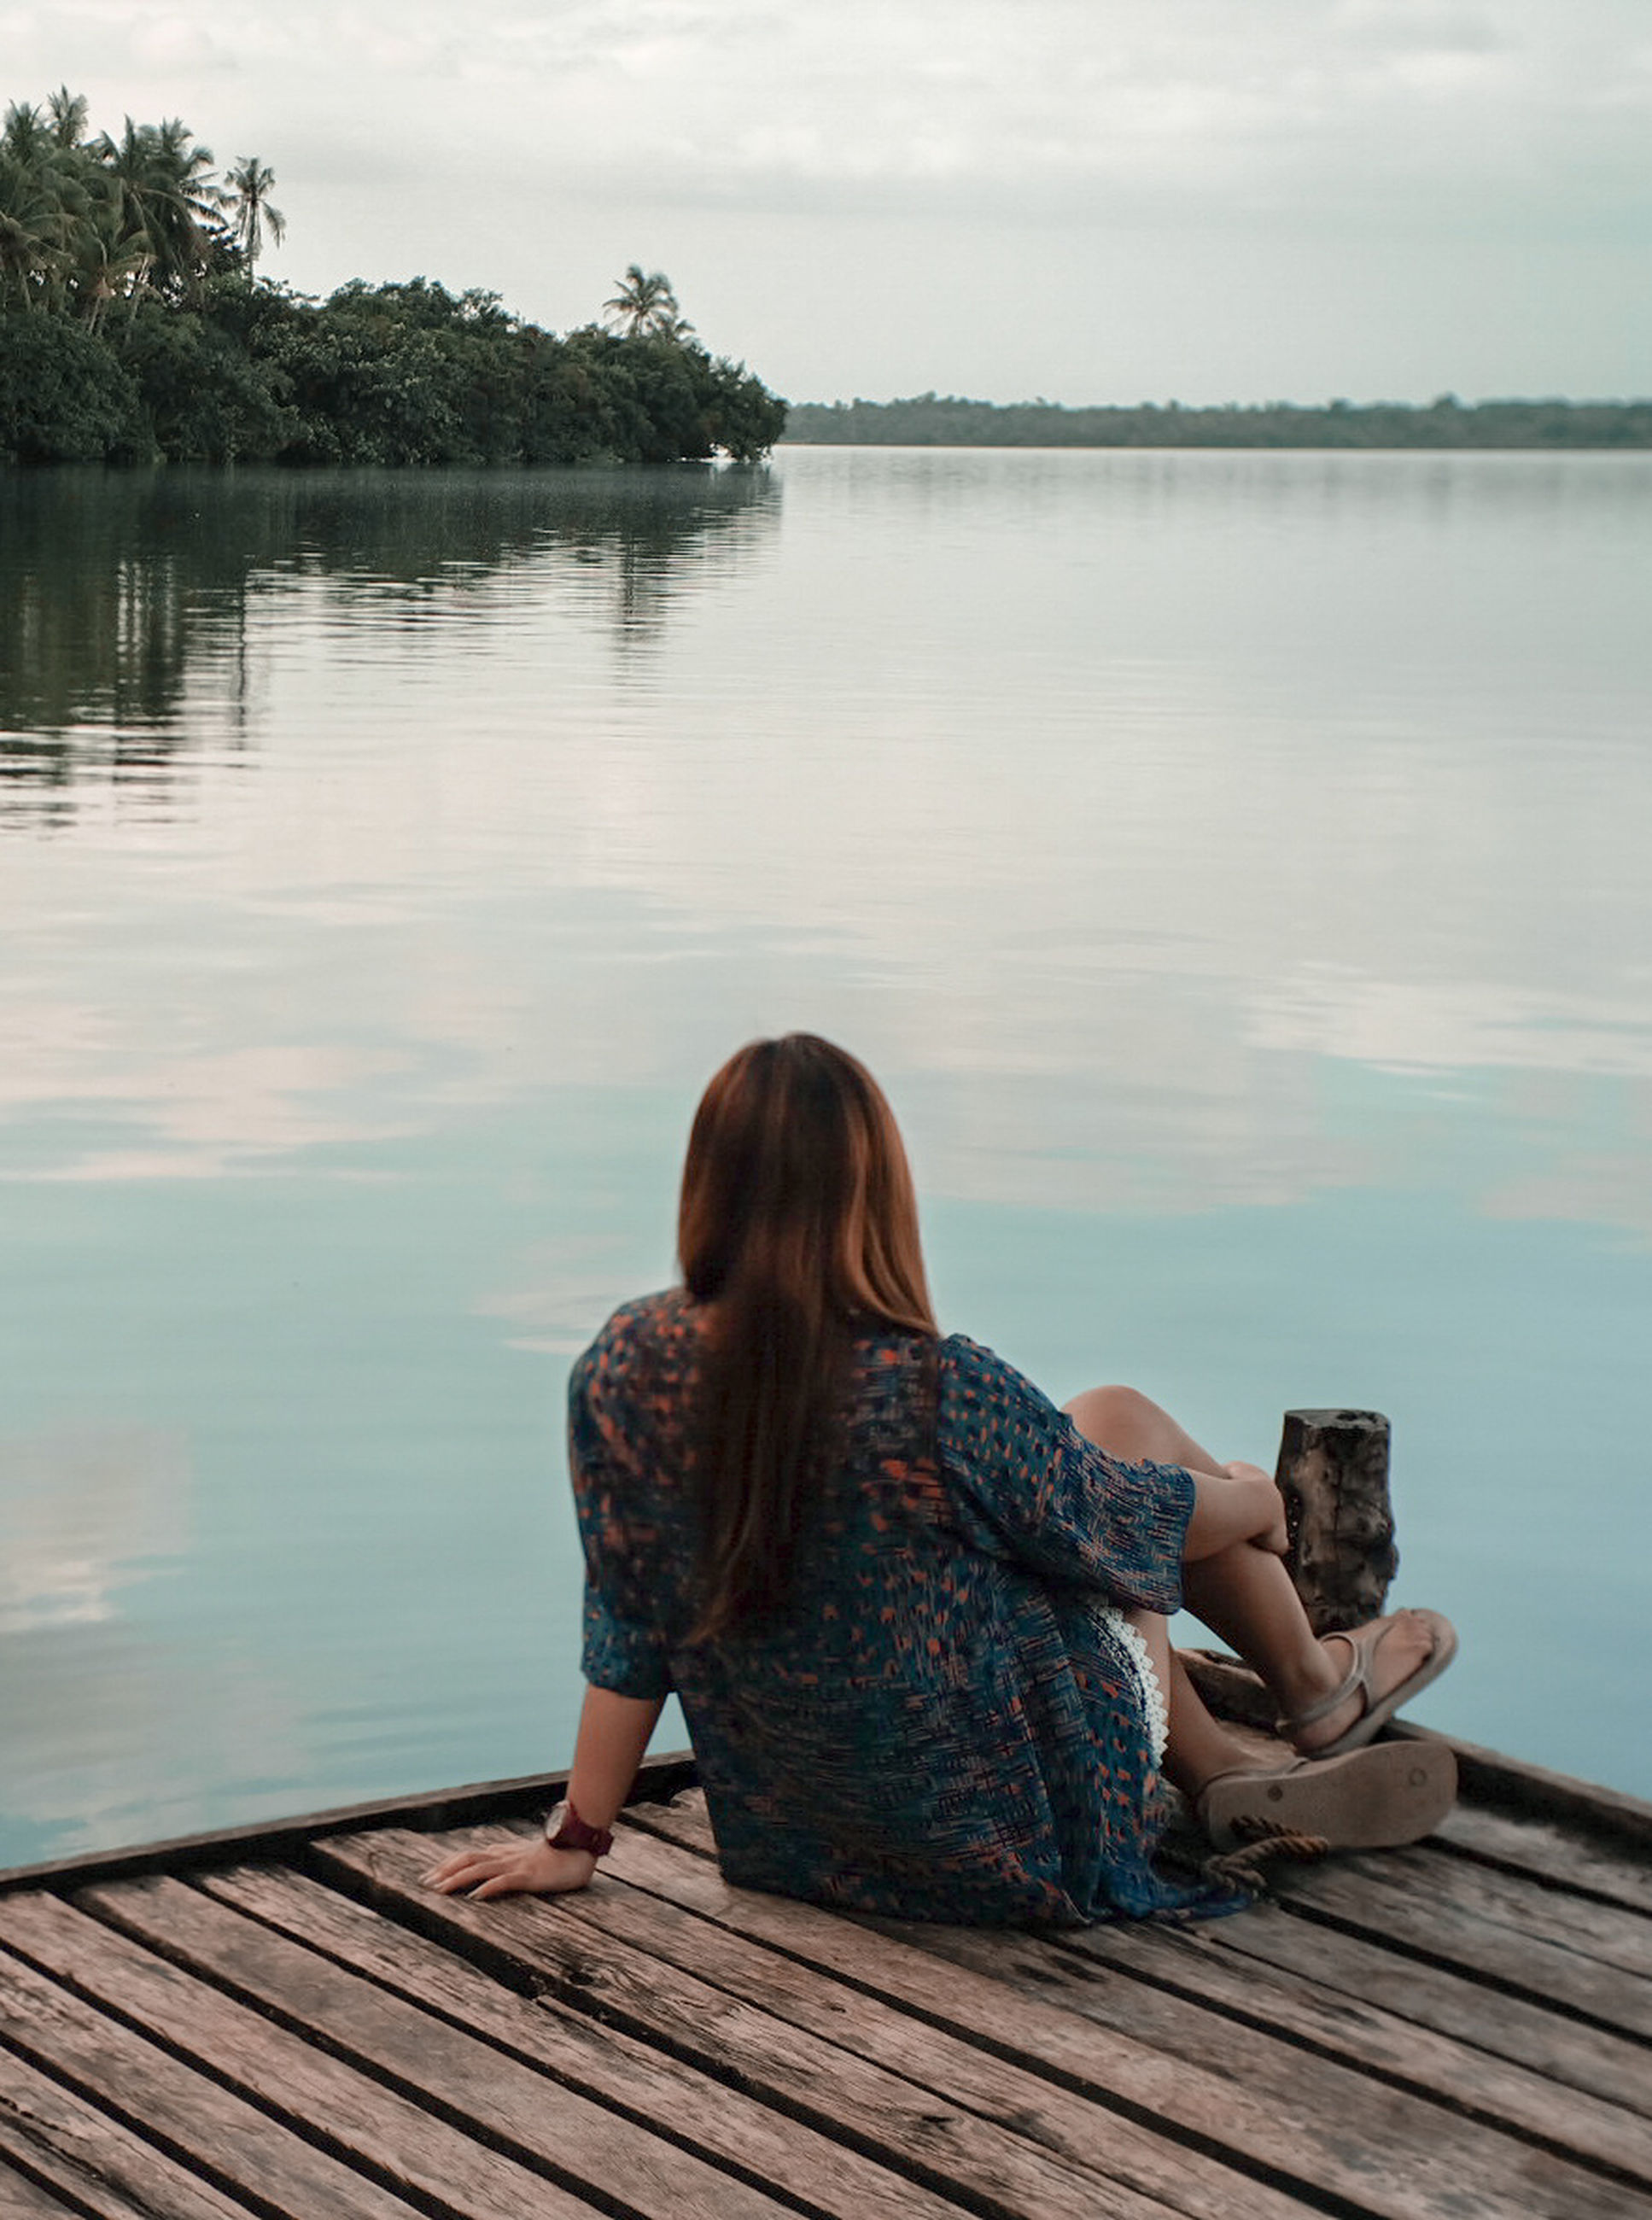 water, rear view, leisure activity, real people, one person, lake, pier, nature, beauty in nature, sitting, jetty, tranquil scene, full length, tranquility, lifestyles, scenics, outdoors, day, wood - material, relaxation, women, sky, young women, wood paneling, tree, young adult